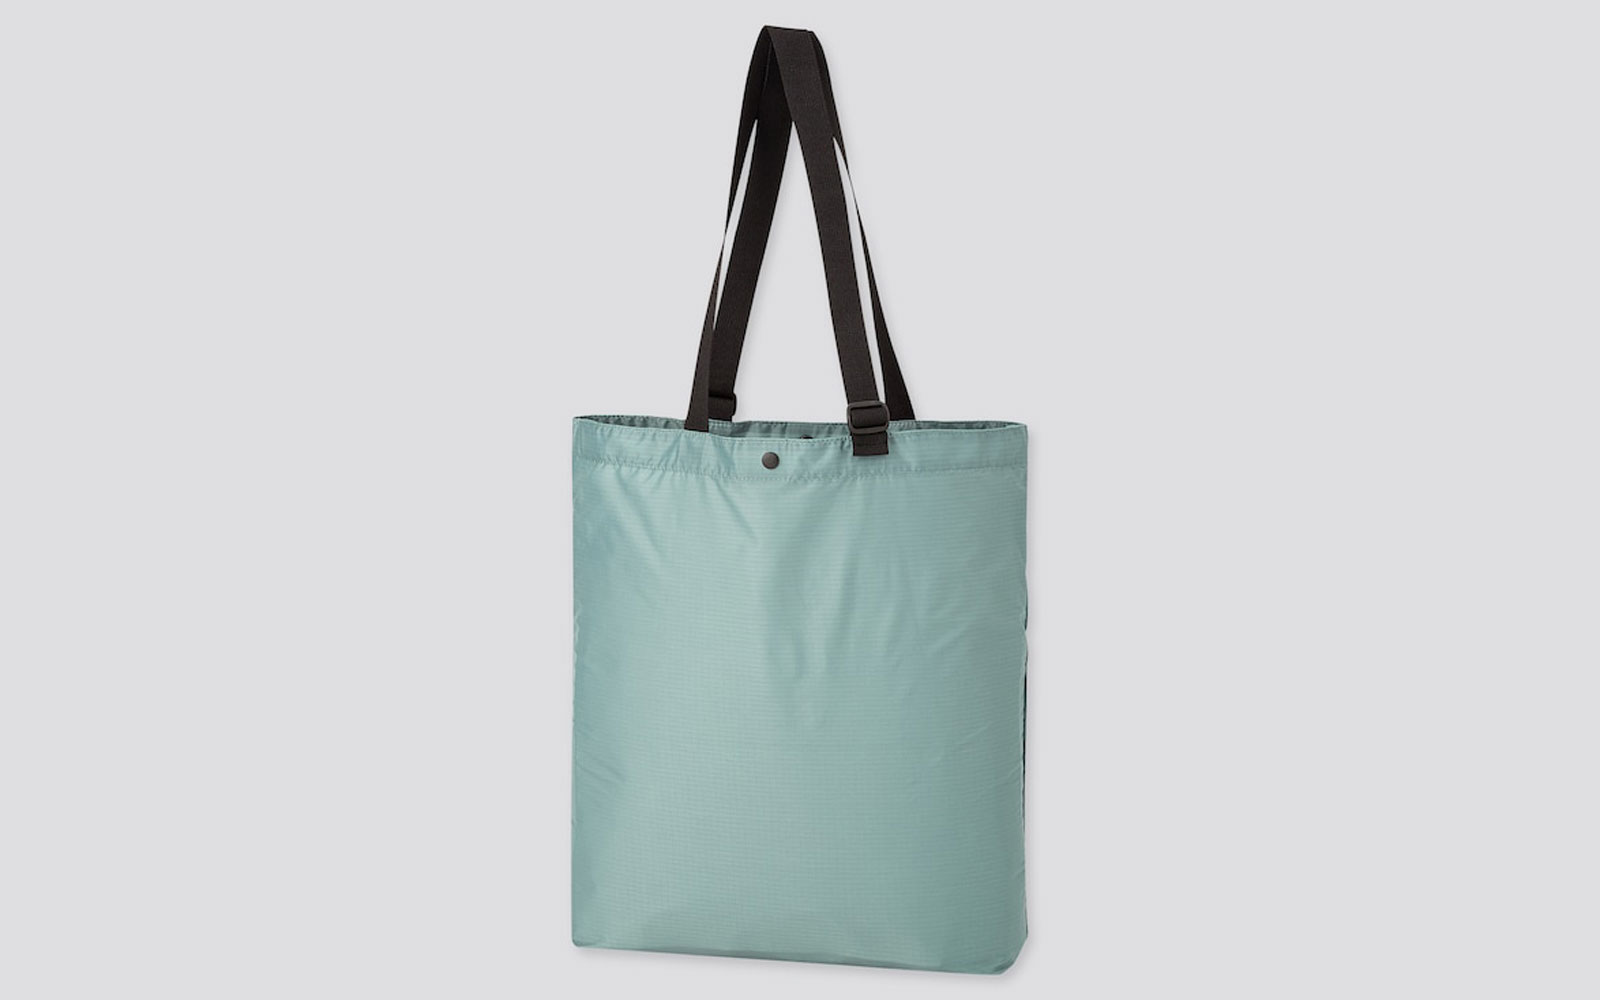 Light blue nylon shopping tote